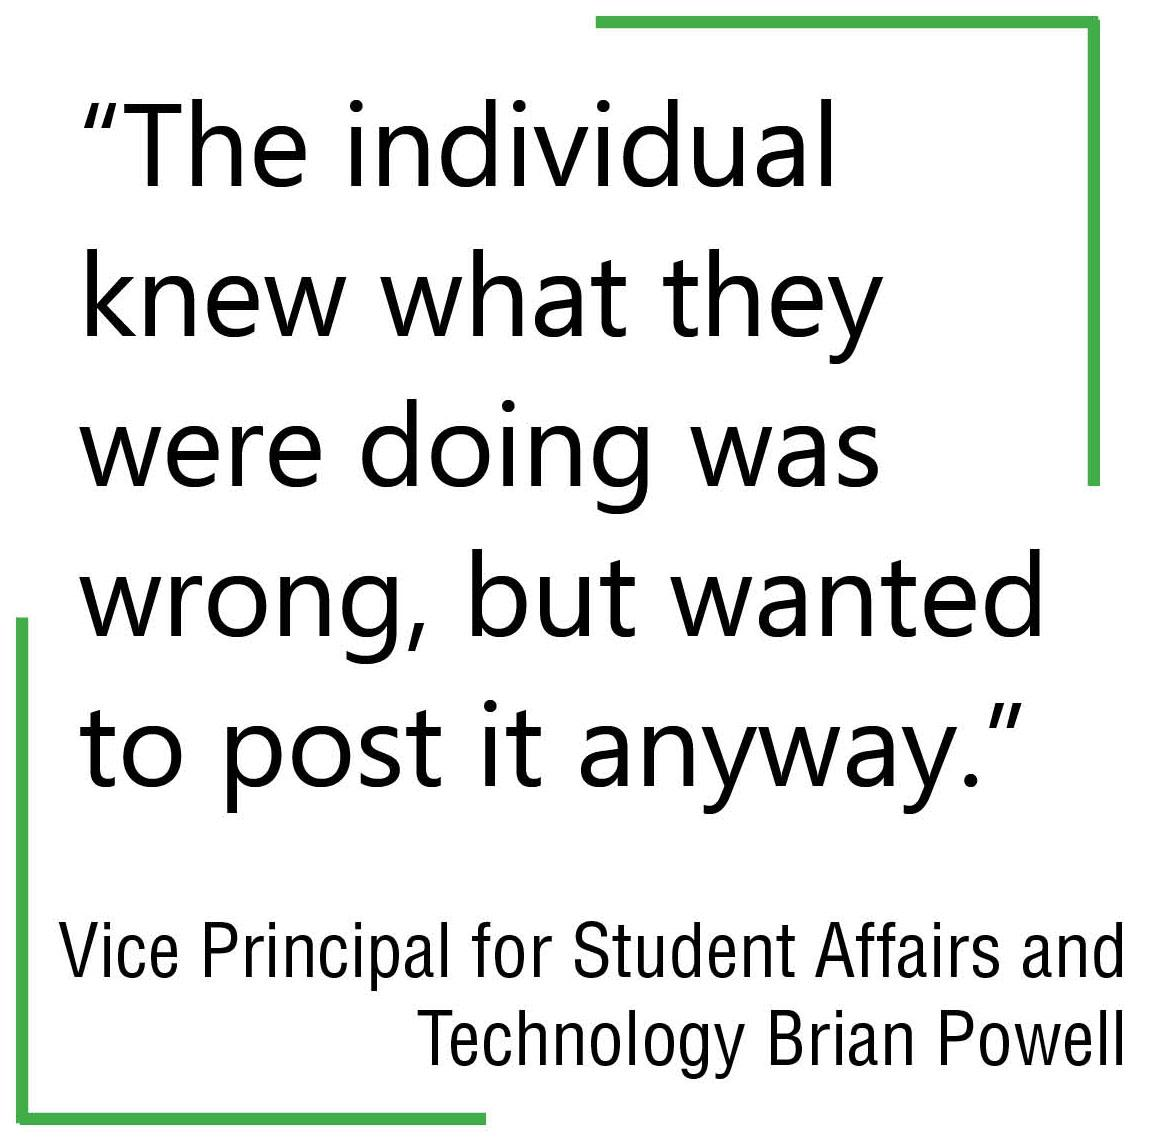 pull-quote-2-600-brain-powell